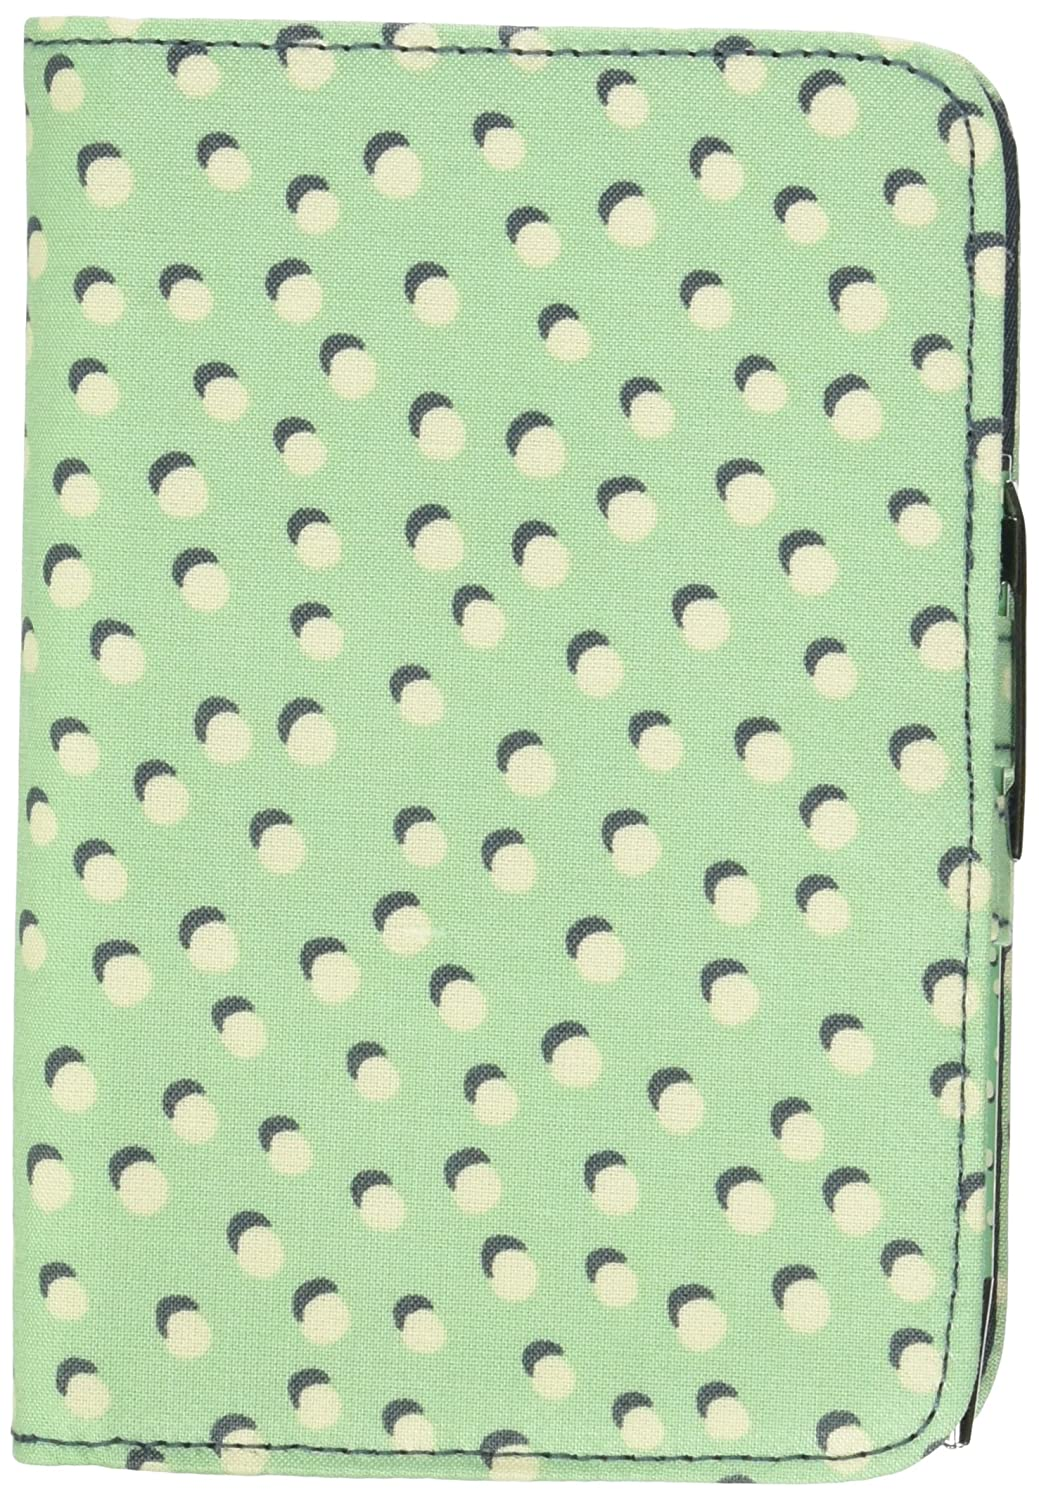 b393fd0162 Amazon.com   Vera Bradley Fabric Journal in Nomadic Dots (15693-587)    Office Products